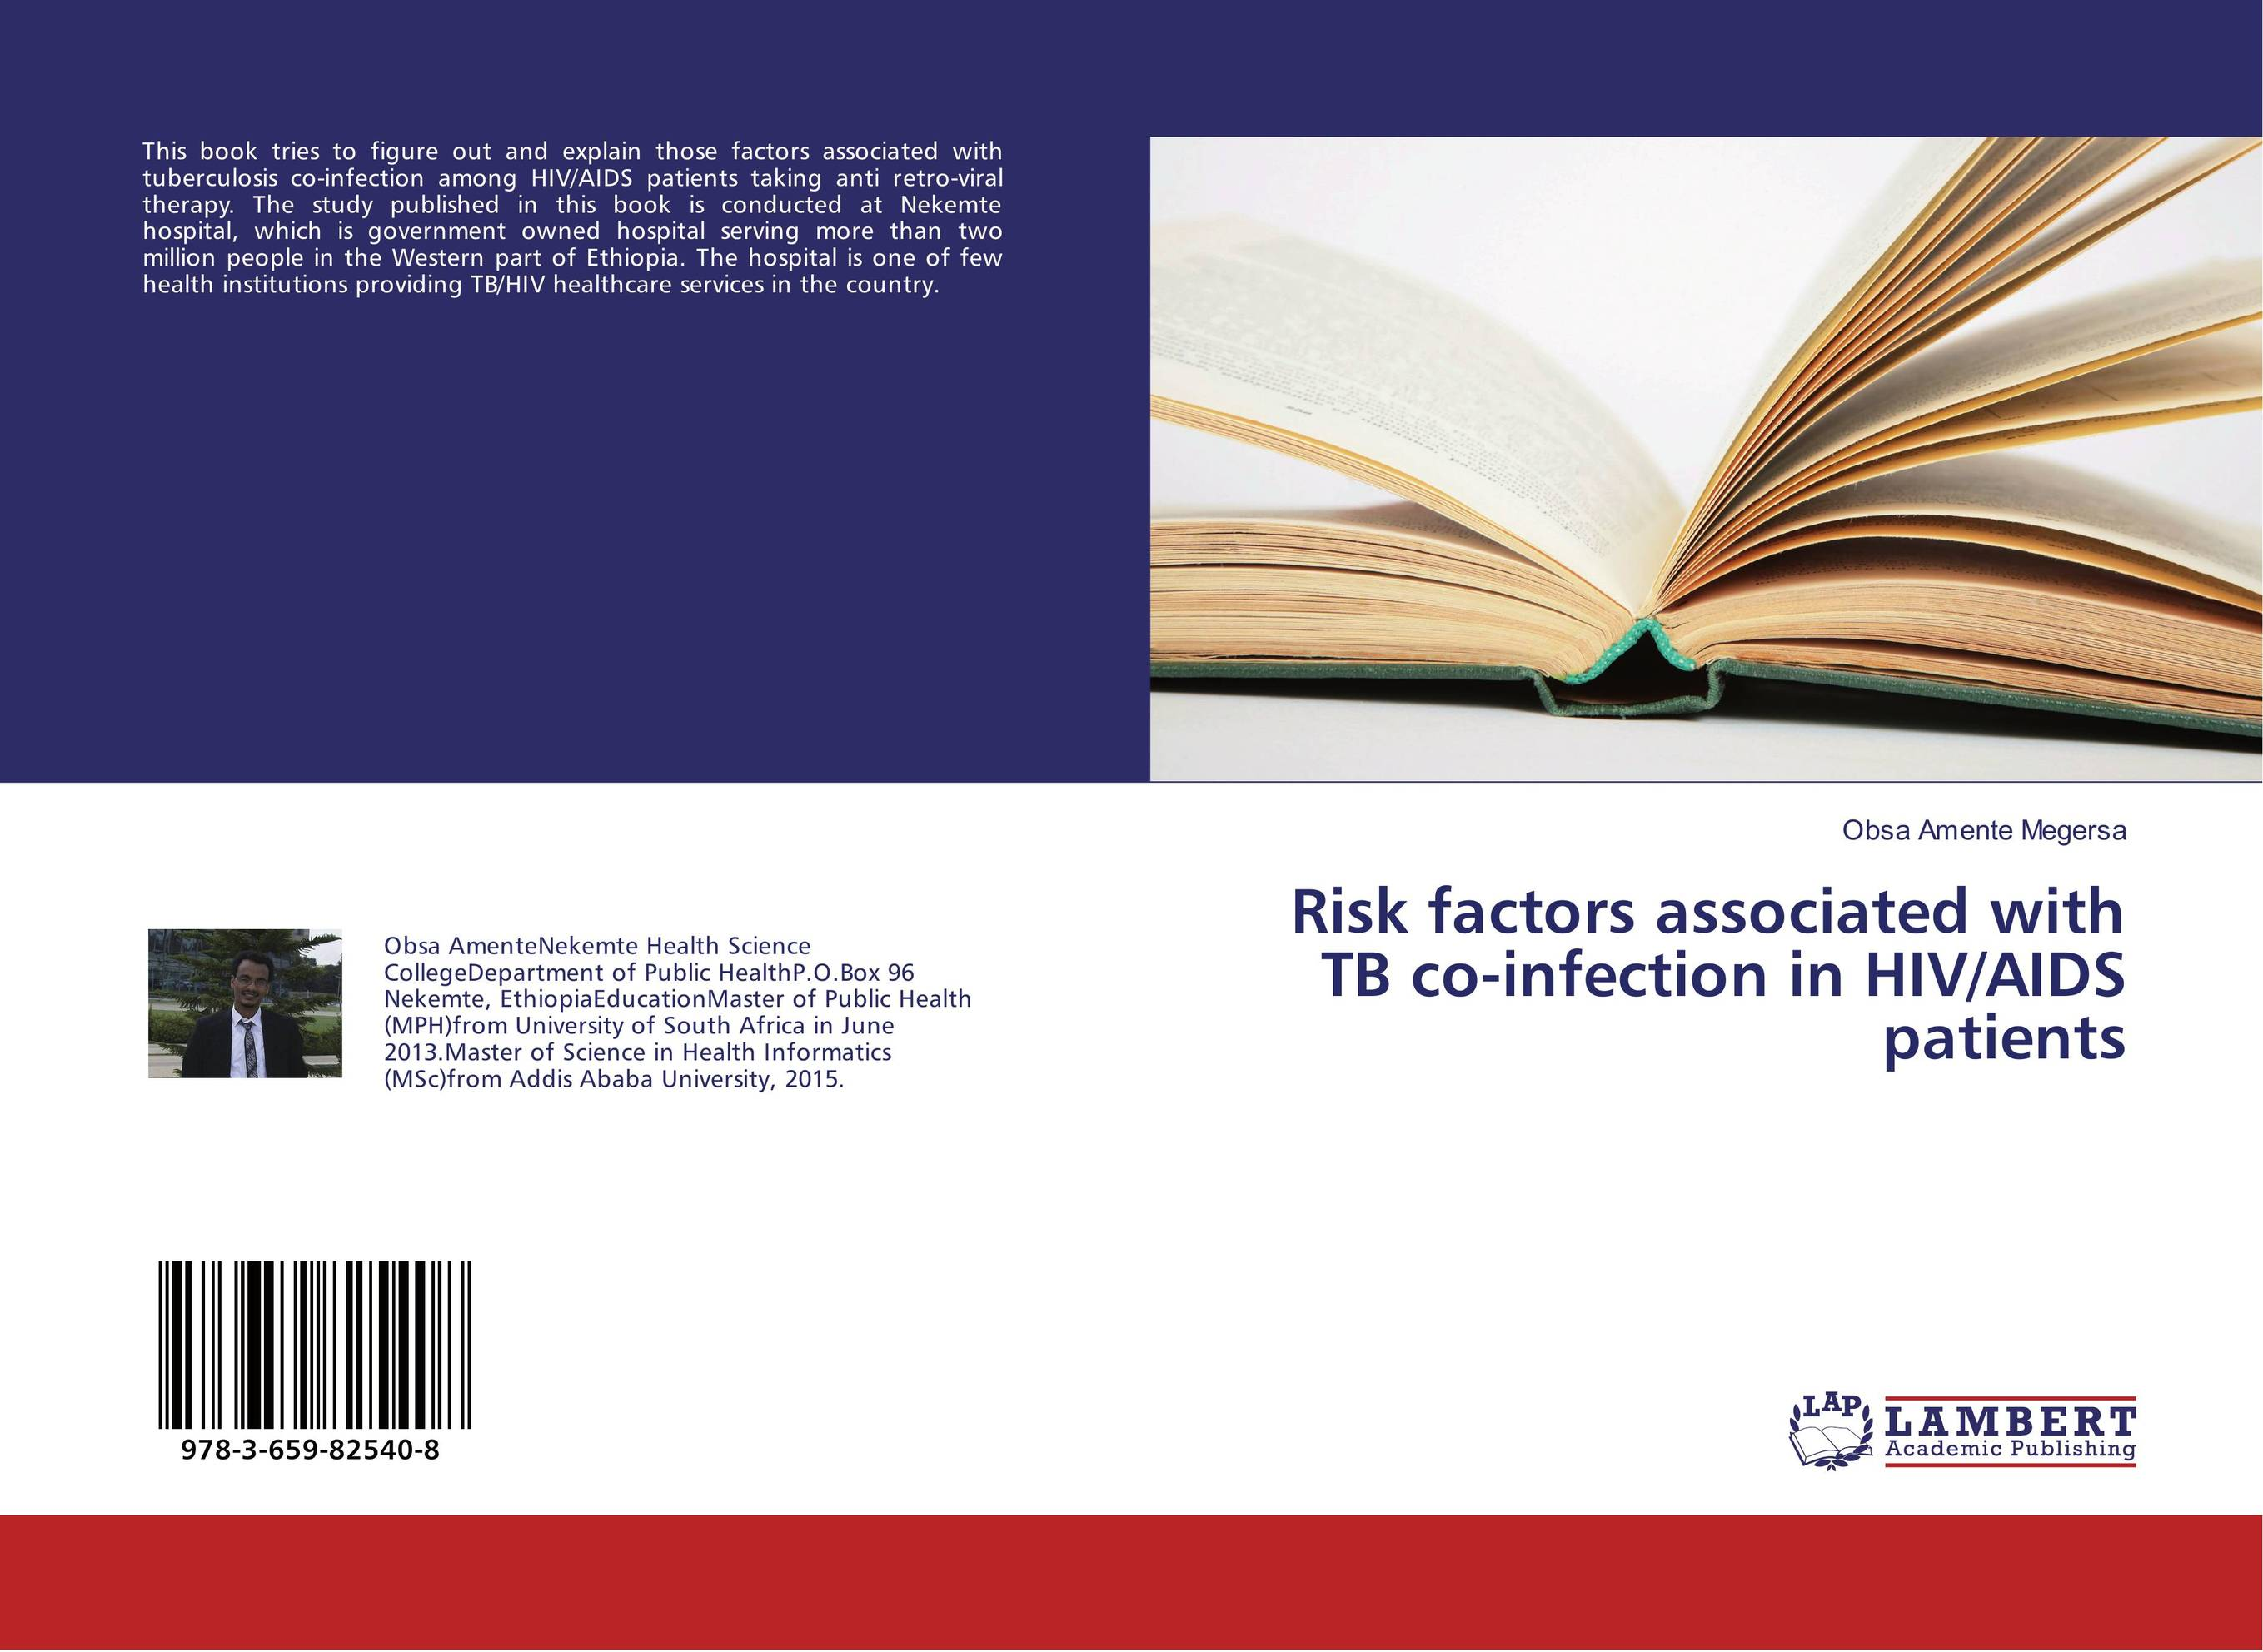 Risk factors associated with TB co-infection in HIV/AIDS patients hiv prevalence in senegal associated with the sugar daddy phenomenon